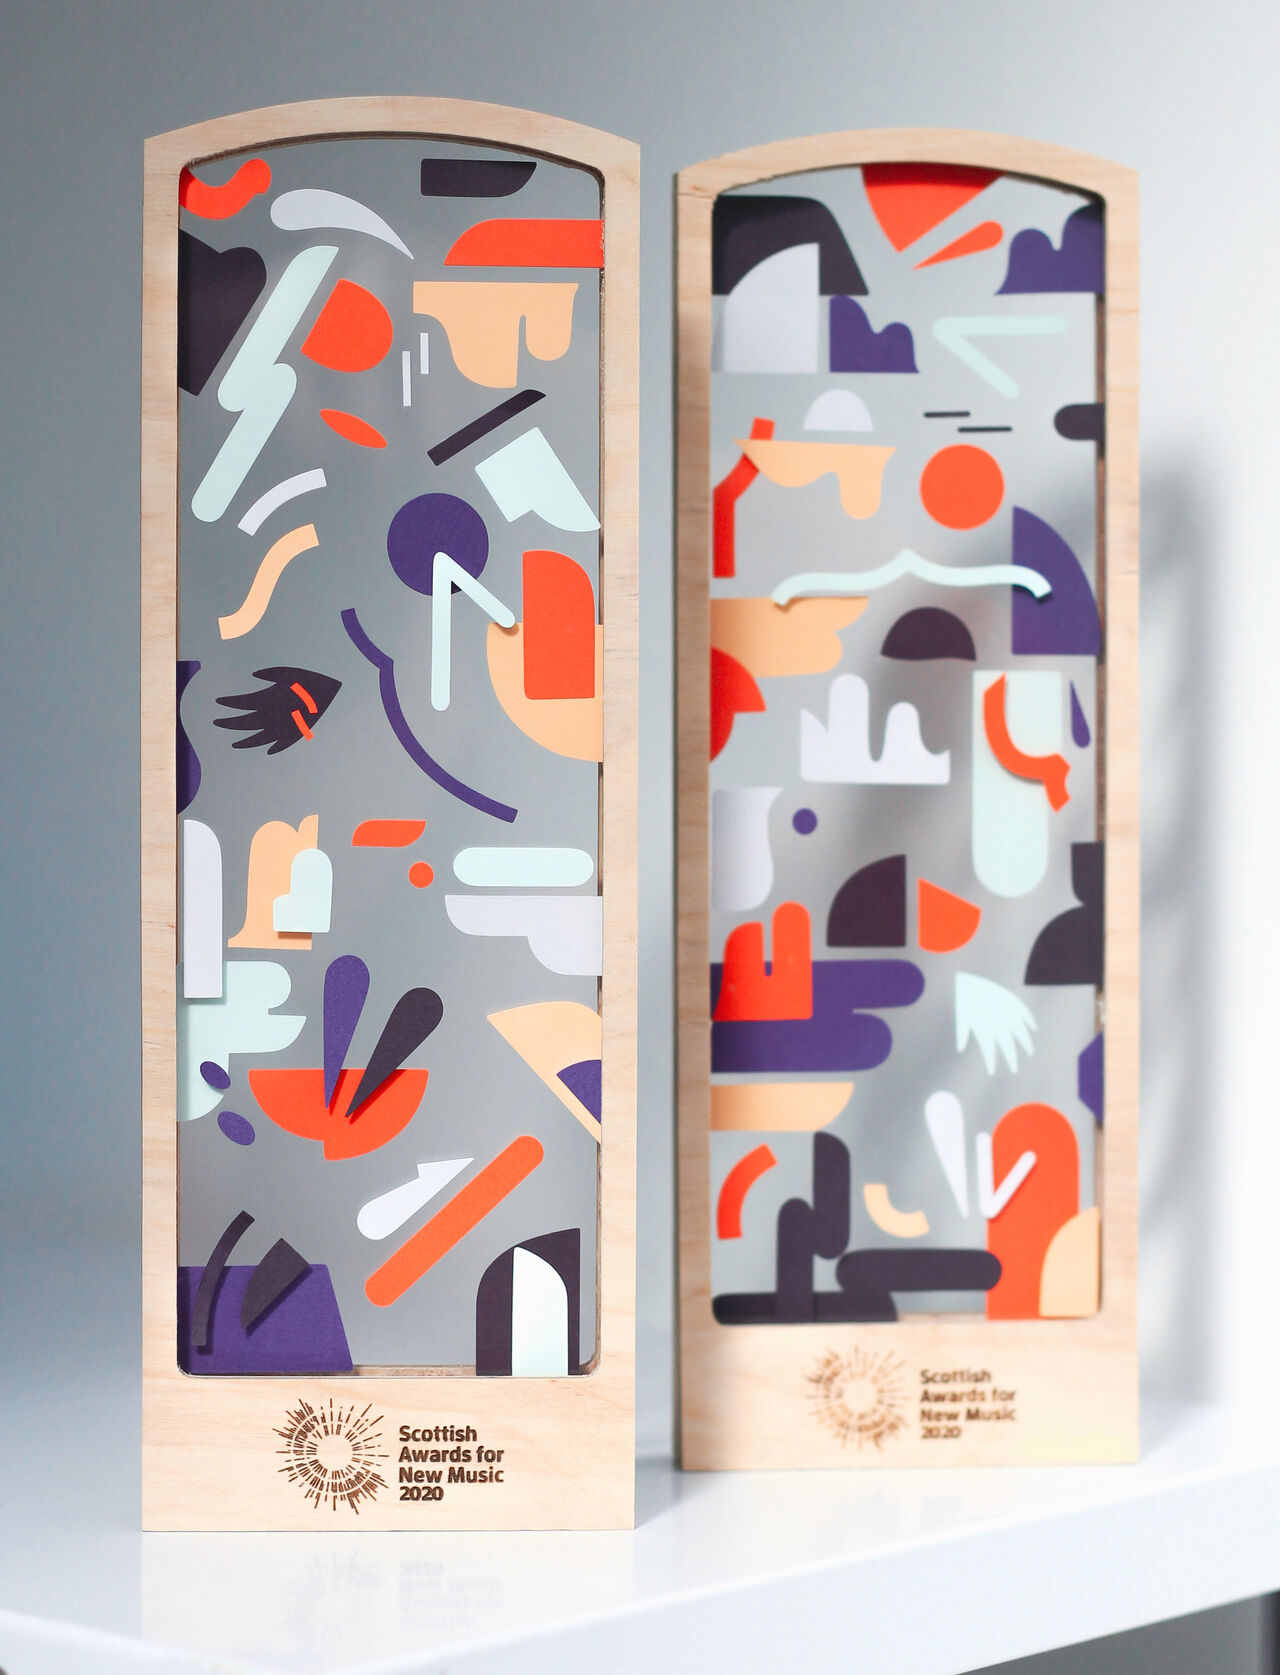 Two trophies made of wood with layers of glass between which are abstract colourful shapes of paper.